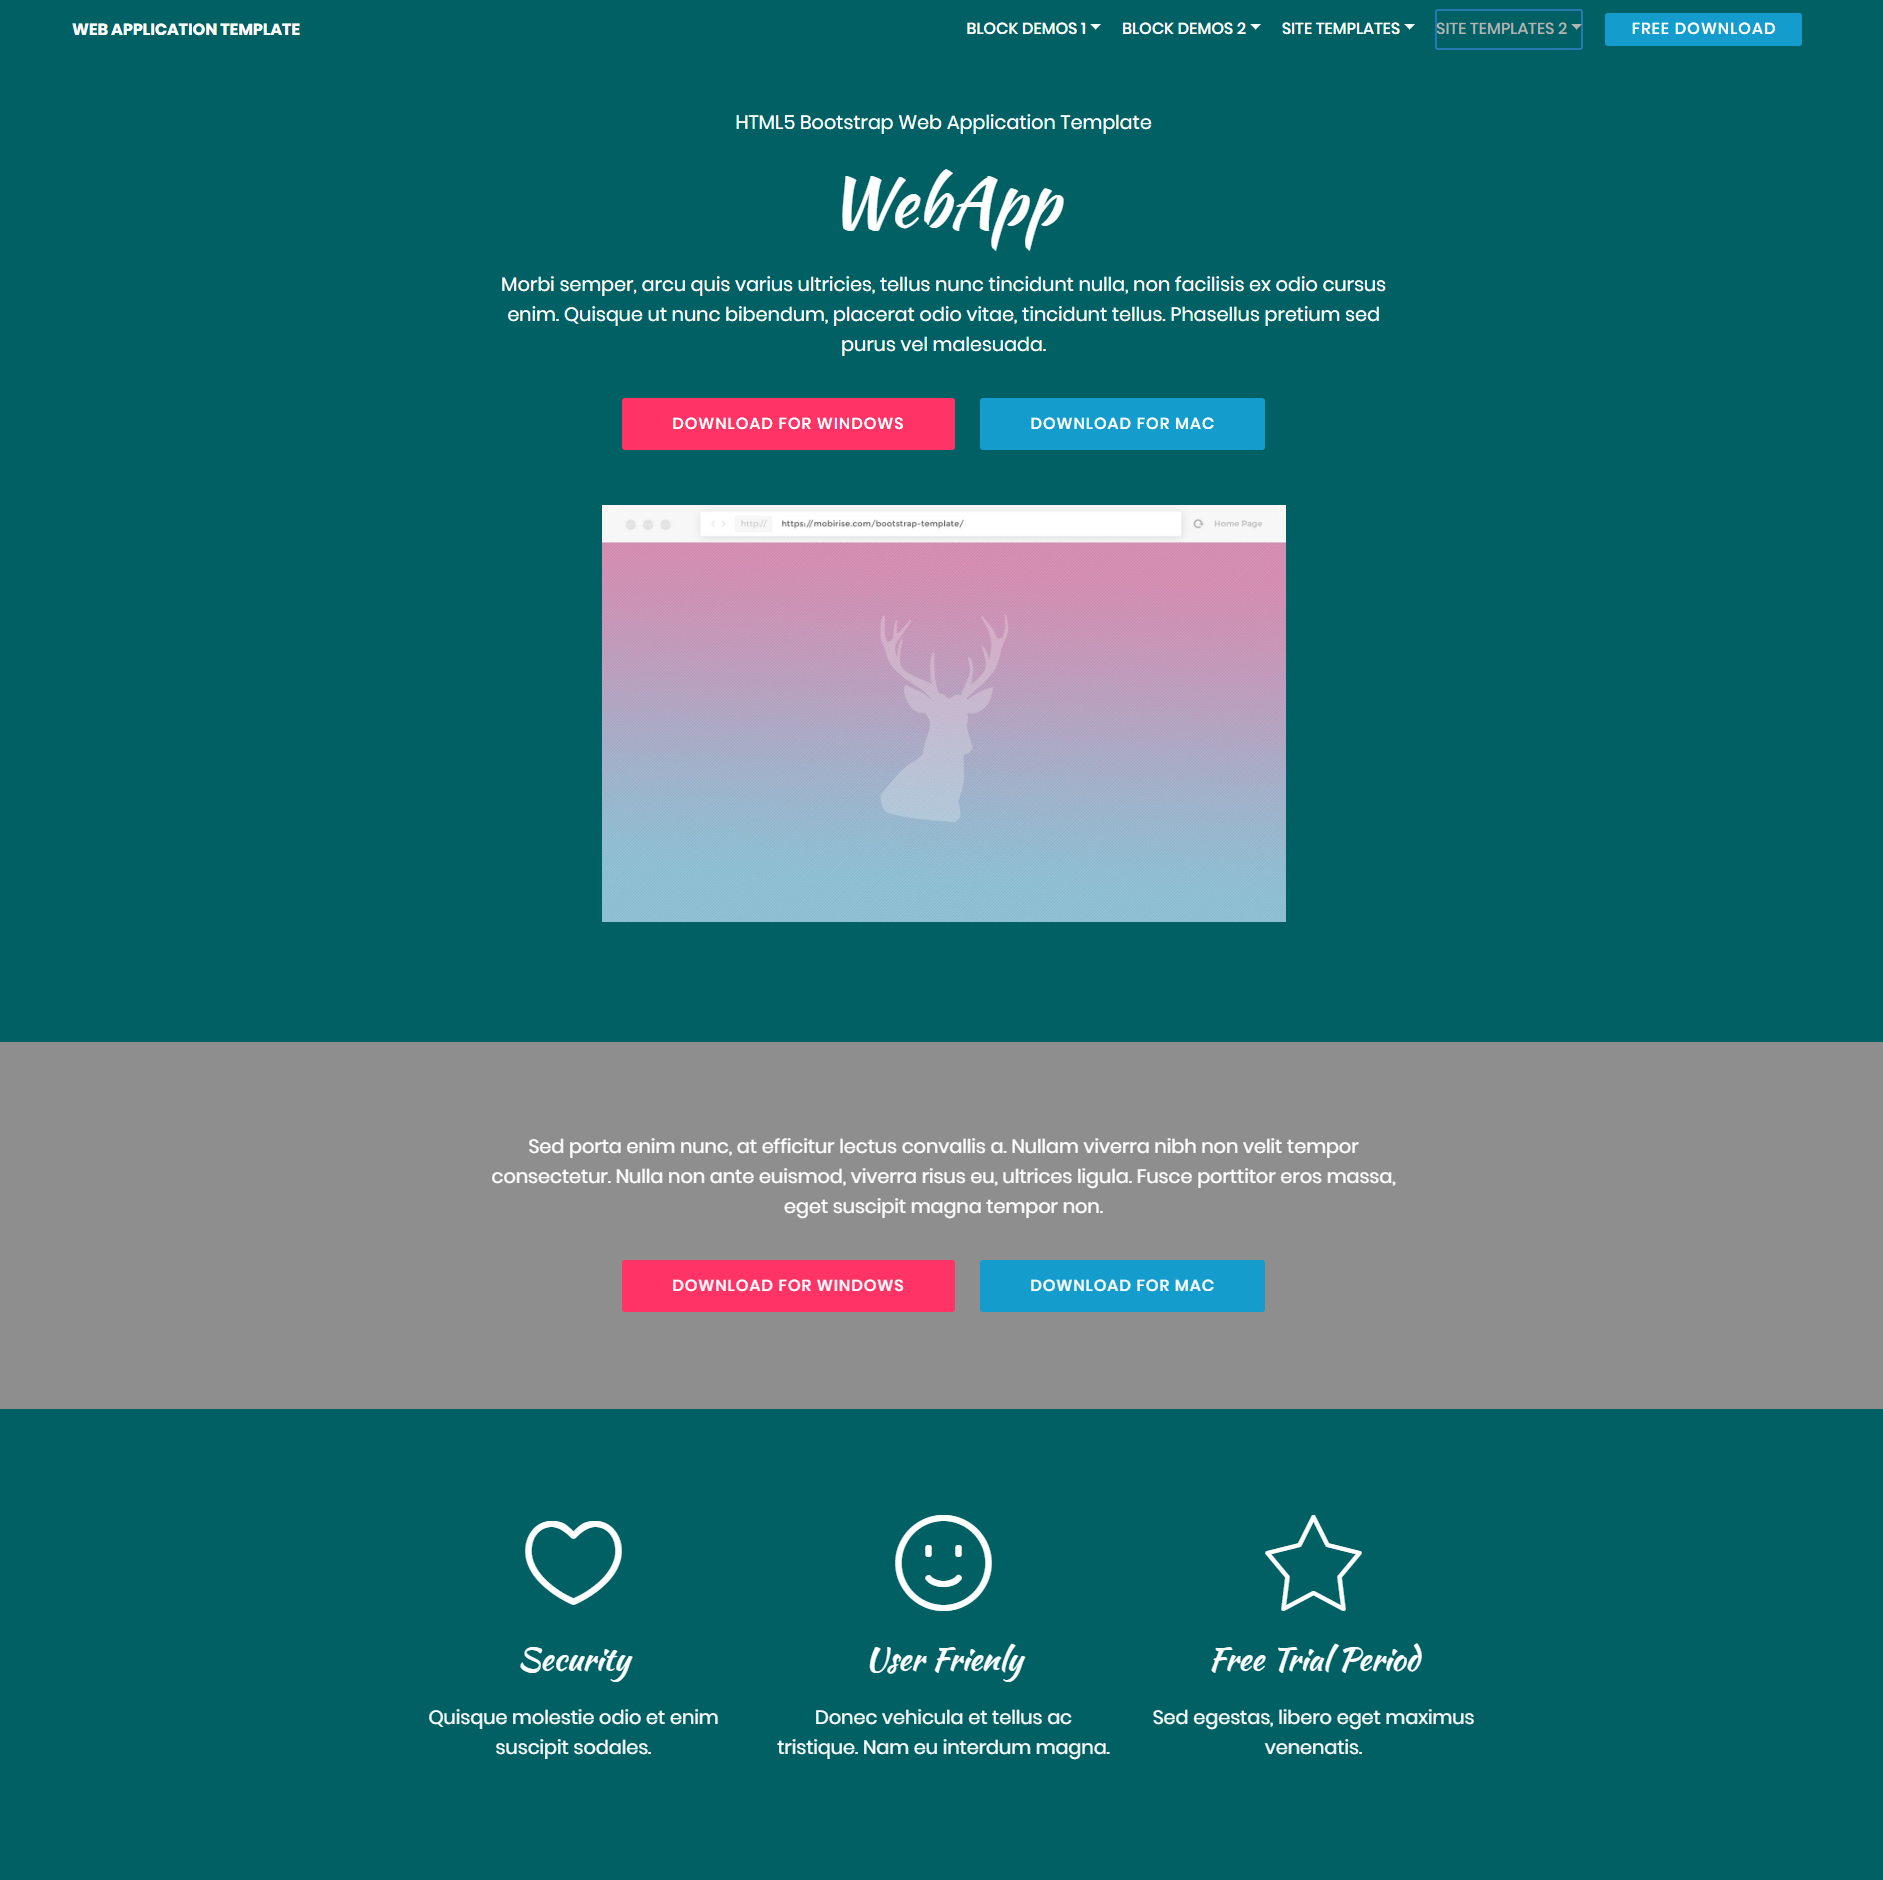 HTML5 Bootstrap Web Application Themes